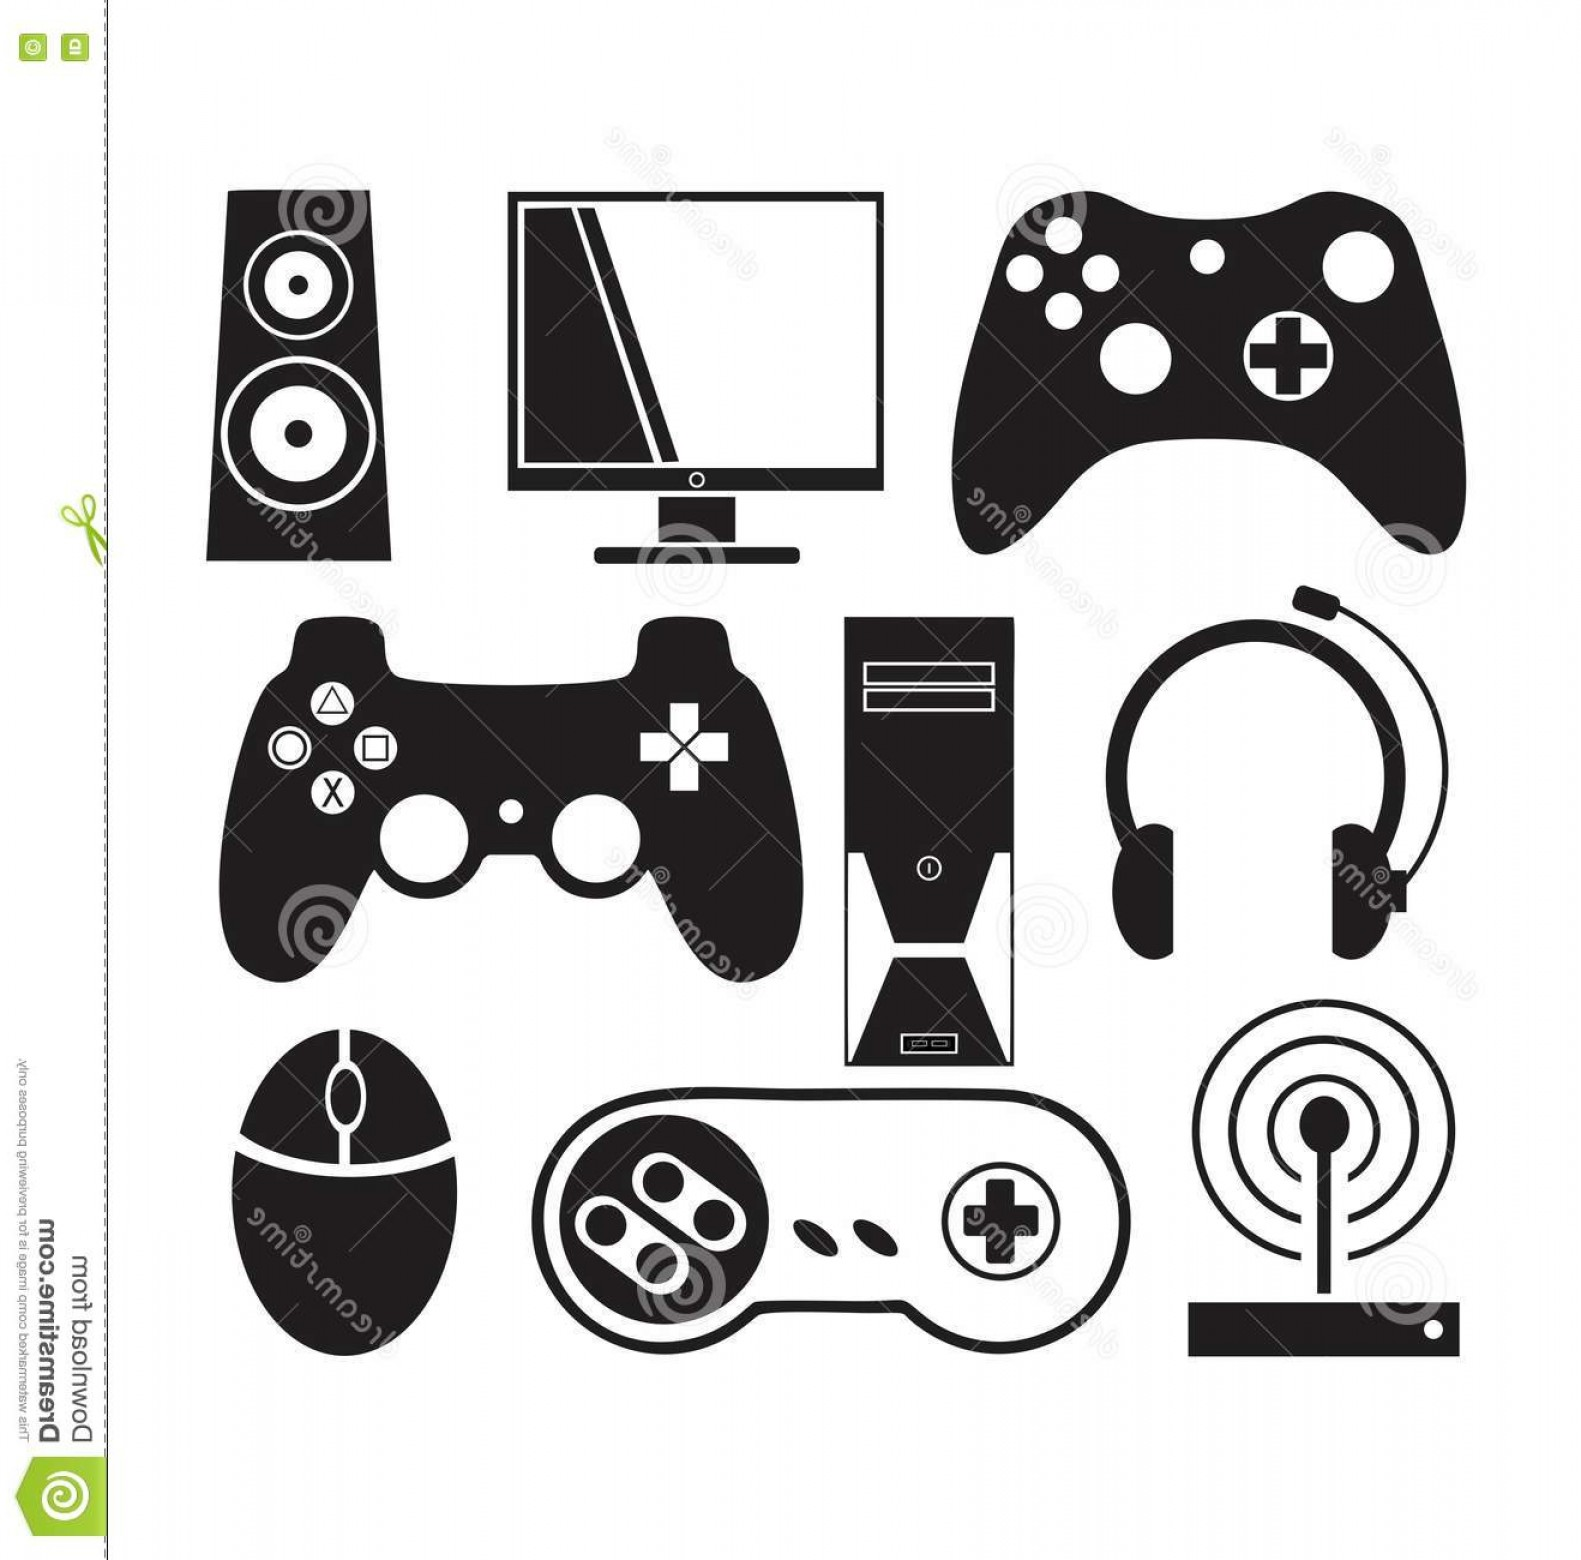 Vector The Game On PC: Stock Illustration Games Console Vector Pc Image